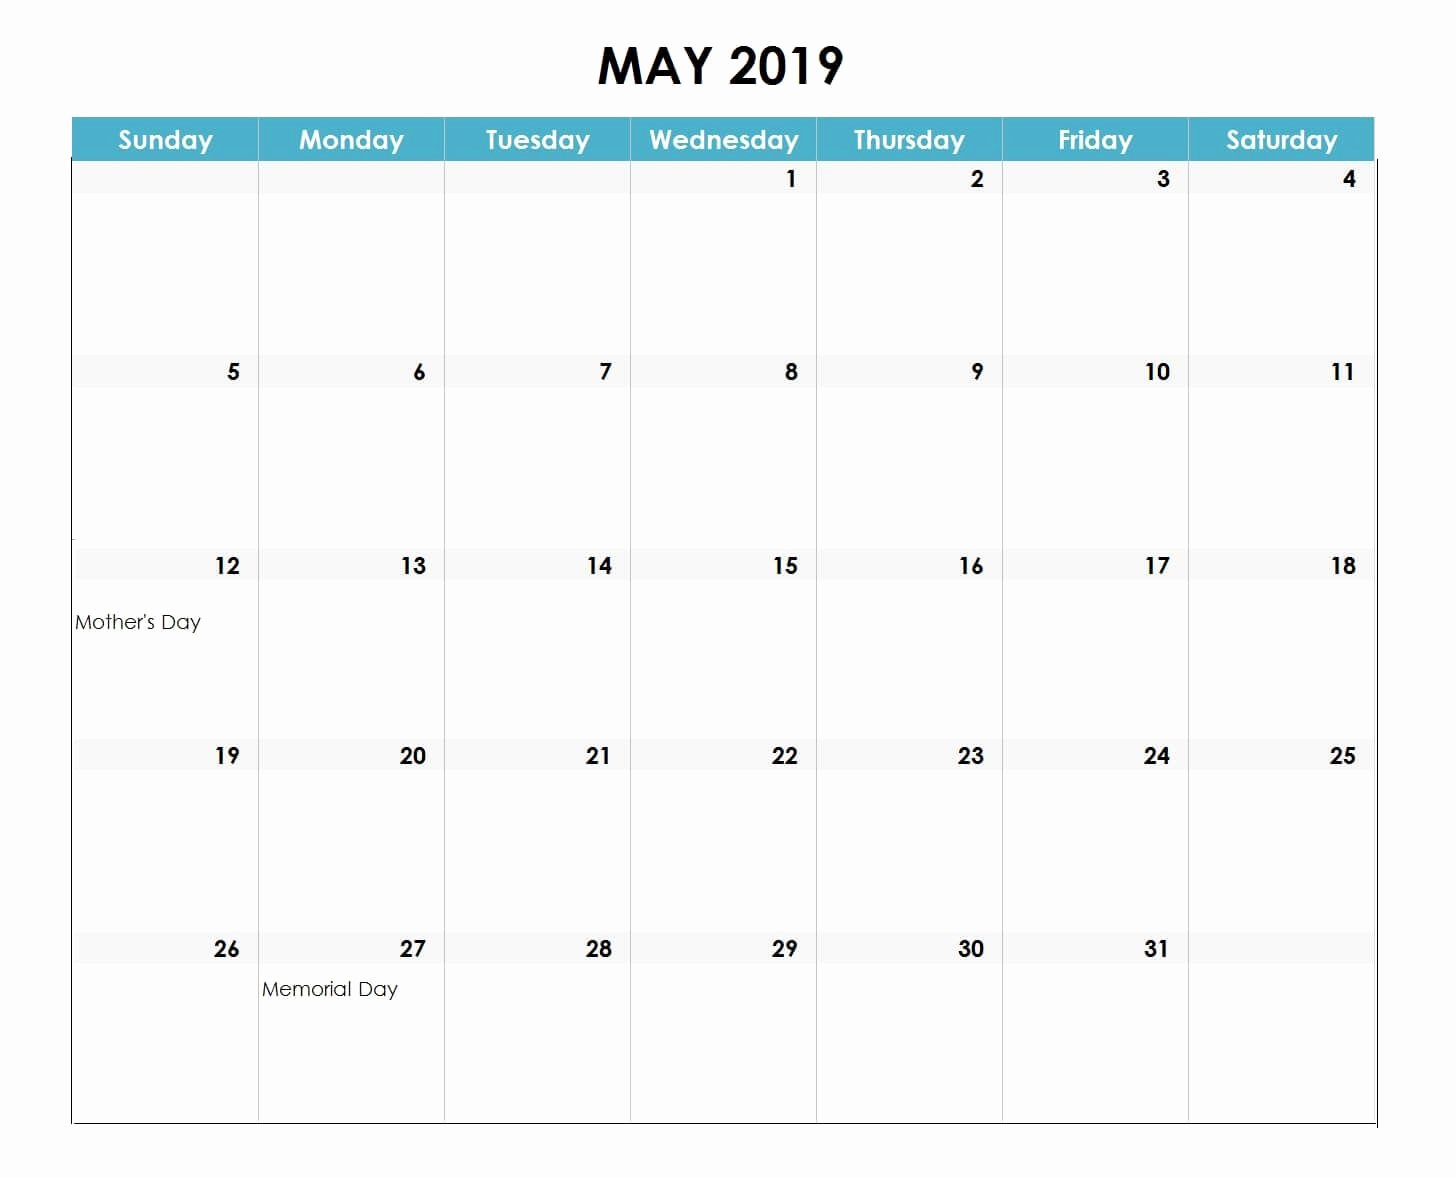 Excel Calendar 2019 Template Unique May 2019 Excel Calendar 2019 2019calendar